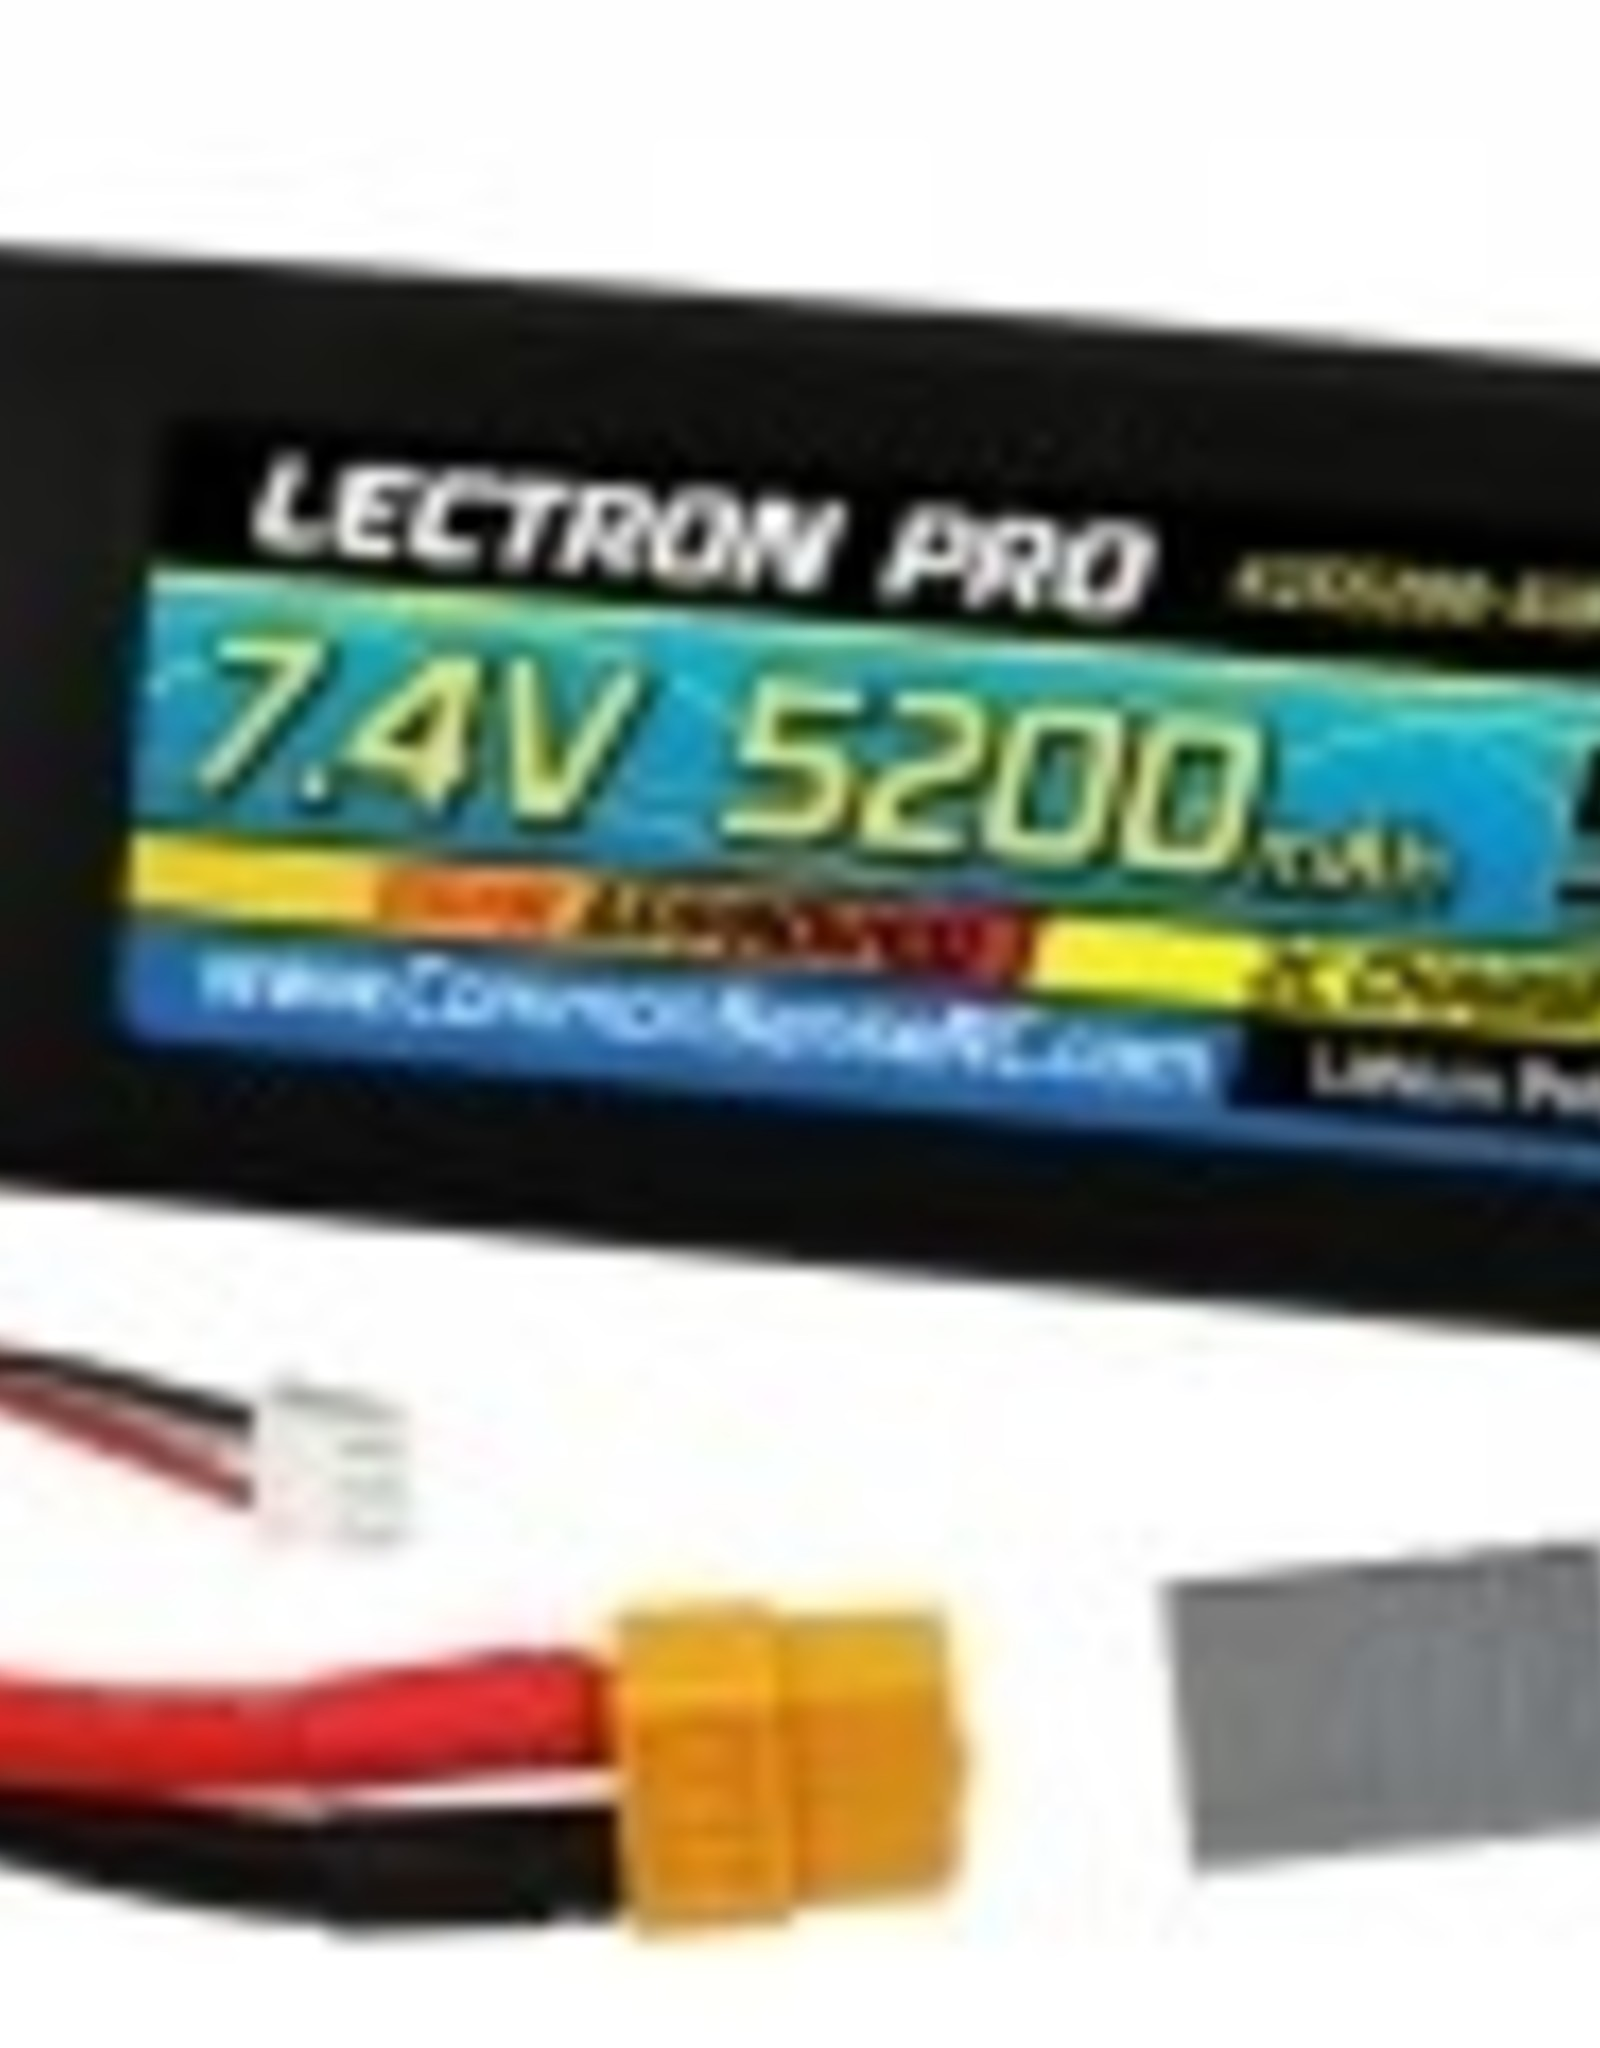 Common Sense Rc Lectron Pro 7.4V 5200mAh 50C Lipo Battery with XT60 Connector + CSRC adapter for XT60 batteries to popular RC vehicles